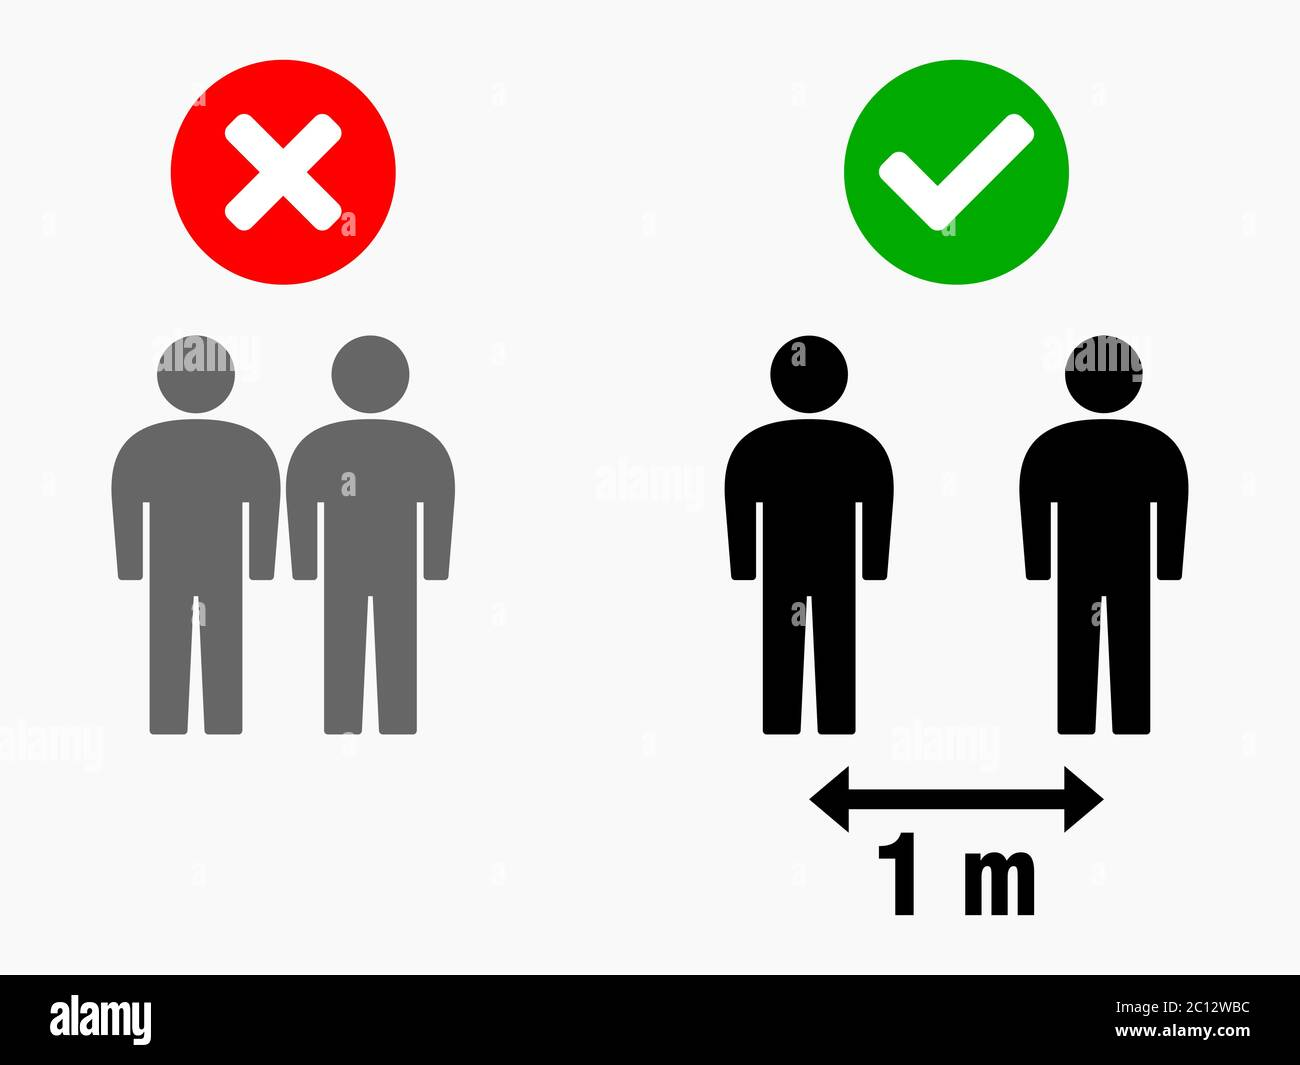 Social Distancing Keep Your Distance 1 M Or 1 Metre Infographic Icon Vector Image Stock Vector Image Art Alamy Free vector icons in svg, psd, png, eps and icon font. https www alamy com social distancing keep your distance 1 m or 1 metre infographic icon vector image image362096208 html